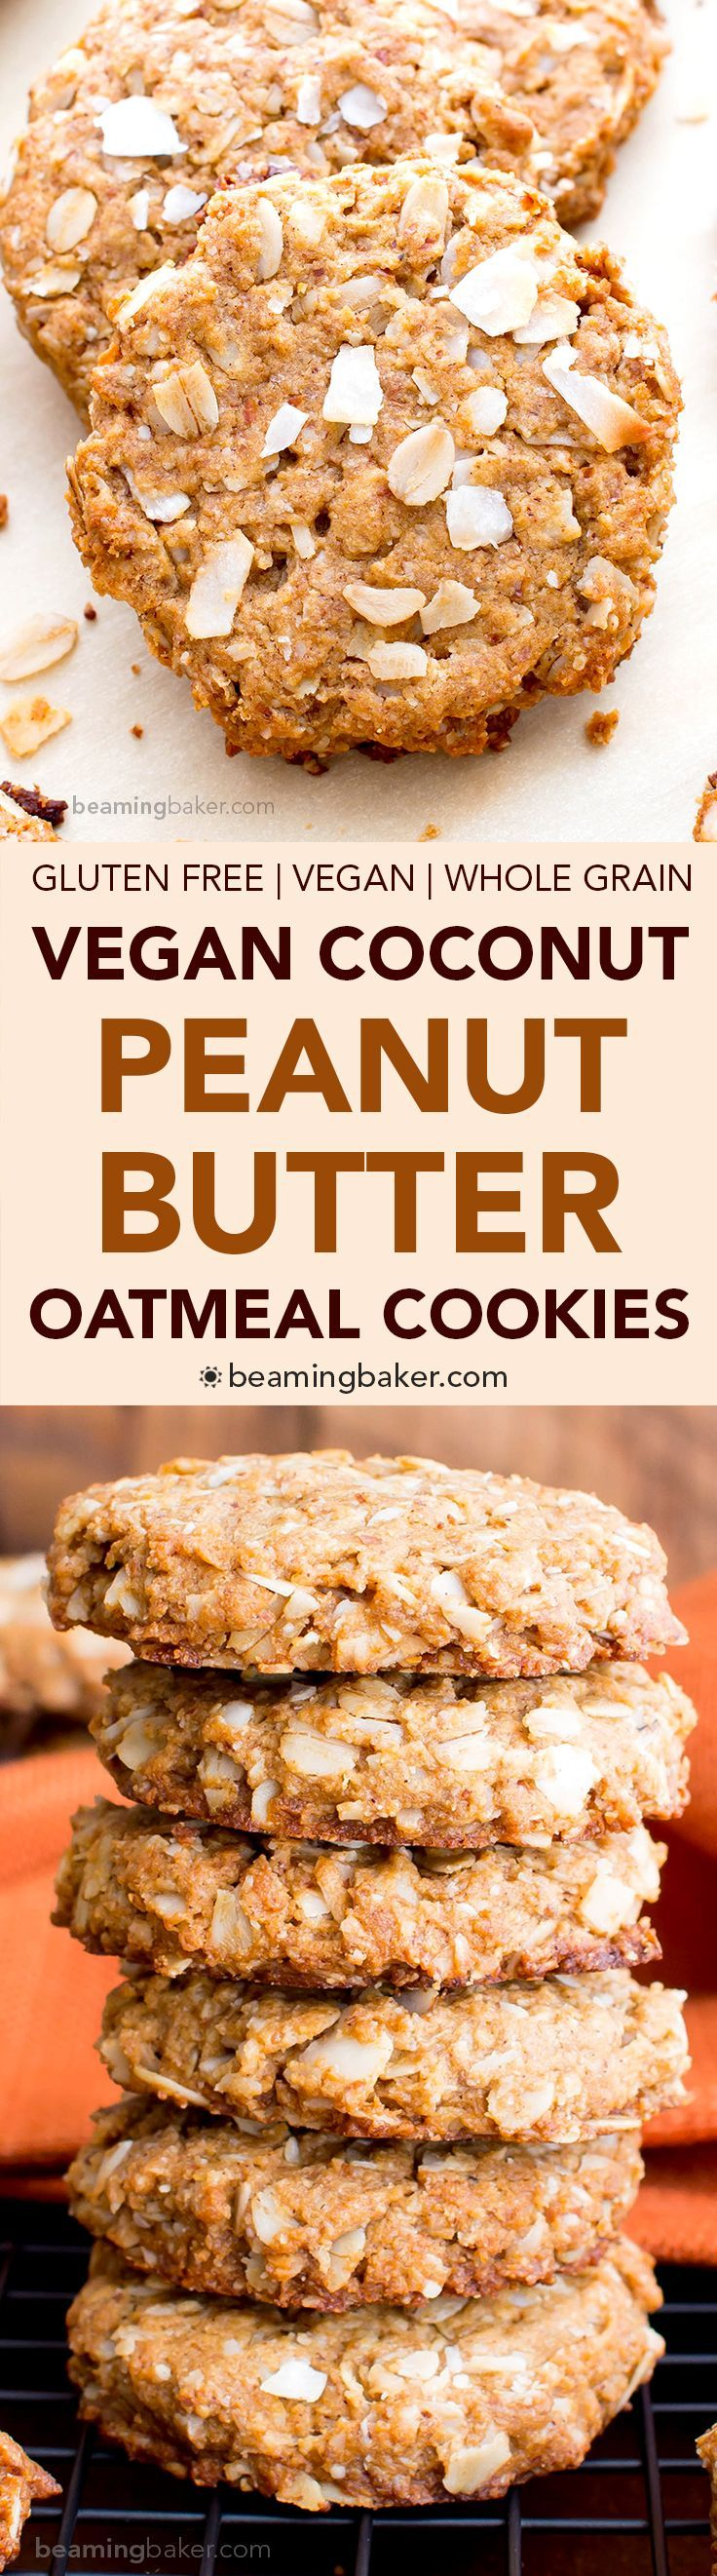 Peanut Butter Coconut Oatmeal Cookies (V, GF): an easy recipe for deliciously thick, chewy peanut butter cookies bursting with coconut and oats.